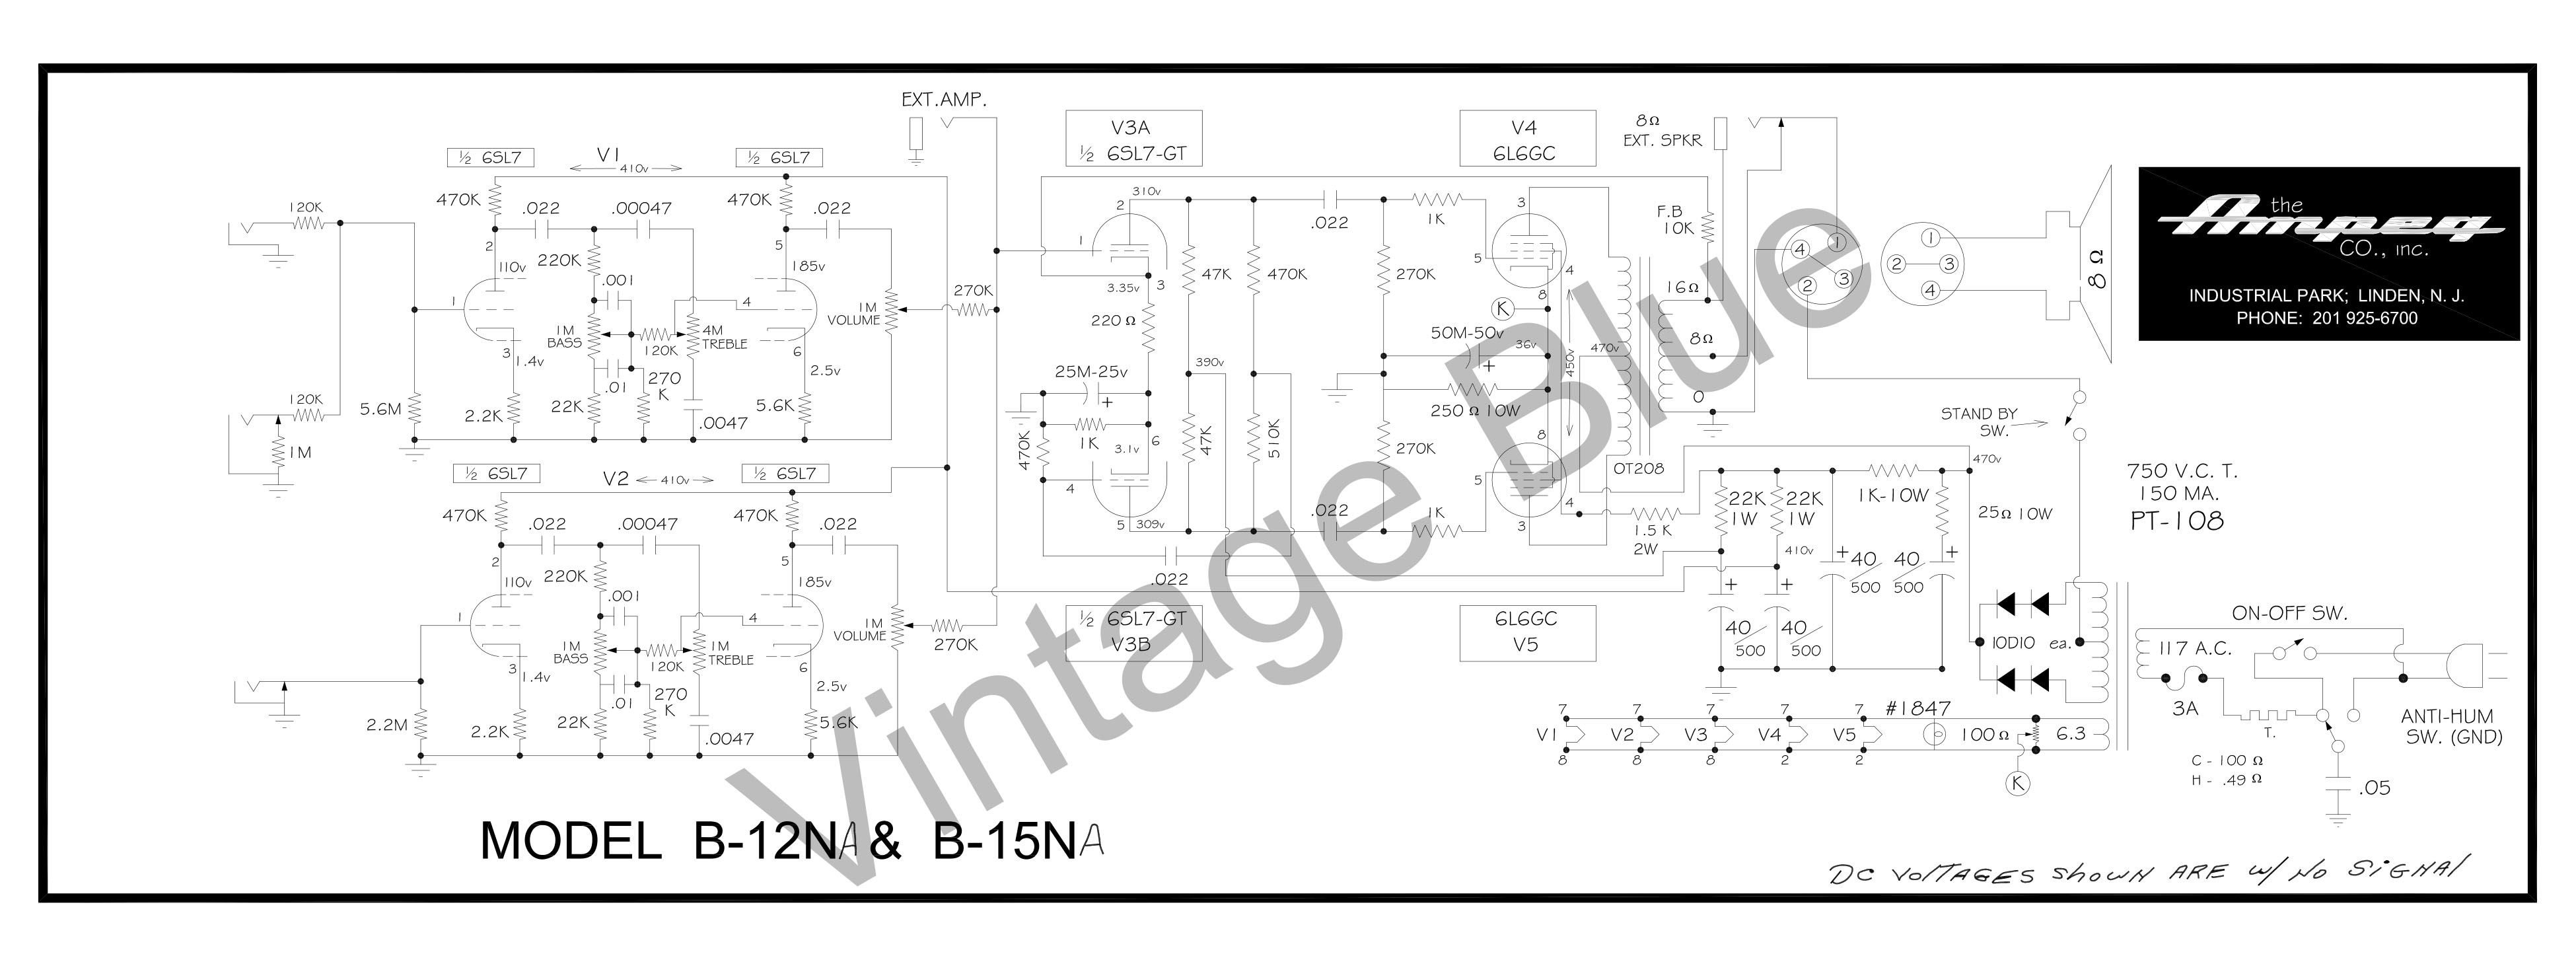 Schematics Schematic on block diagram, ladder logic, straight-line diagram, function block diagram, circuit diagram, diagramming software, cross section, functional flow block diagram, data flow diagram, schematic capture, technical drawing, piping and instrumentation diagram, control flow diagram, electronic design automation, one-line diagram, tube map,